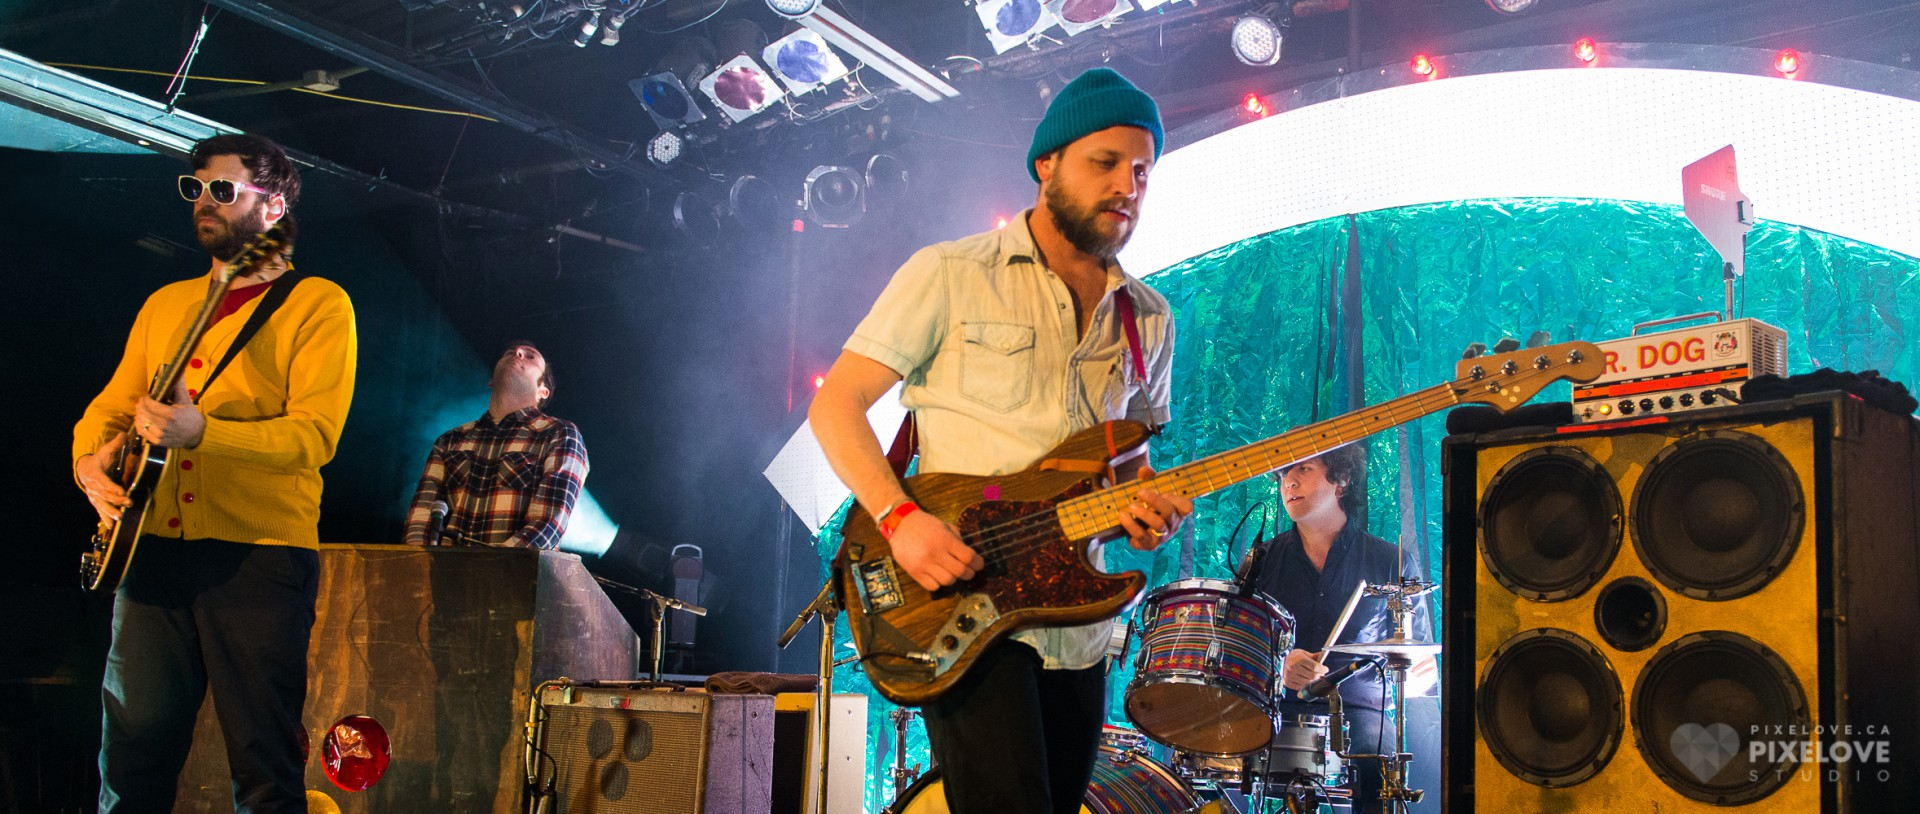 DR. DOG en Cabaret du Mile End